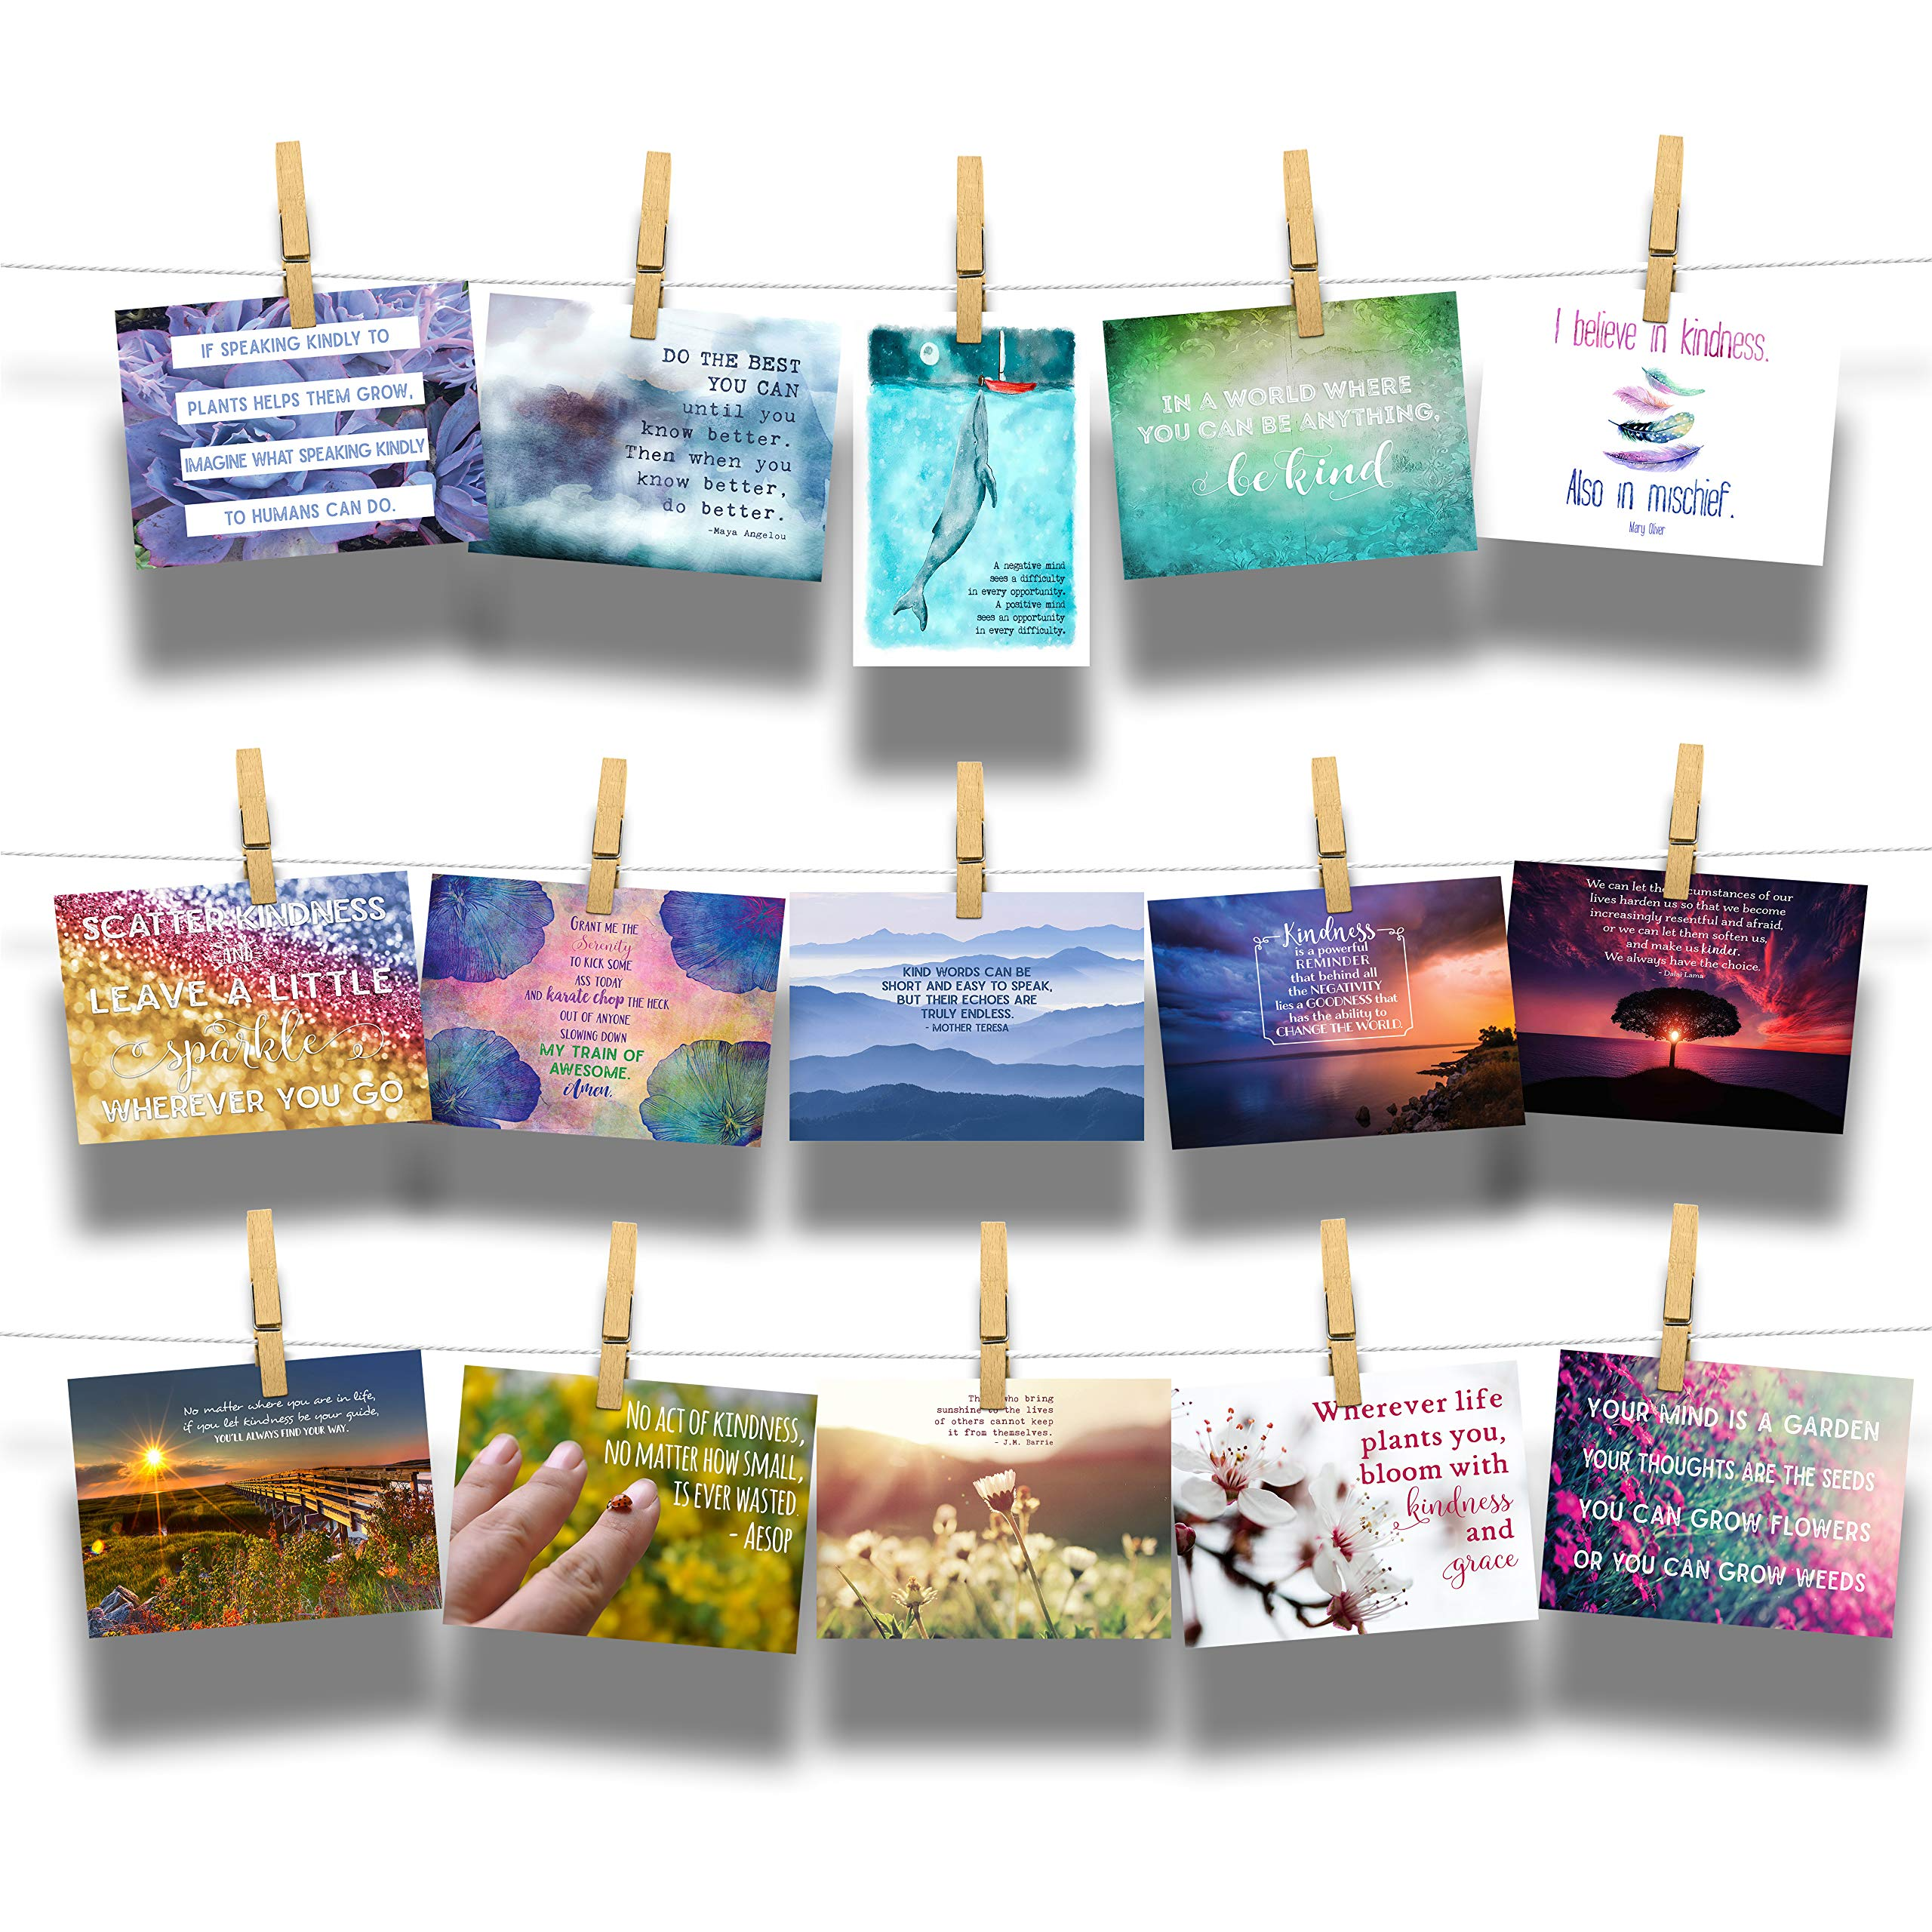 Kind Cards Postcard 15-Pack Assortment - Collection of Encouraging Kindness Inspirational Postcards by Novelty Treats